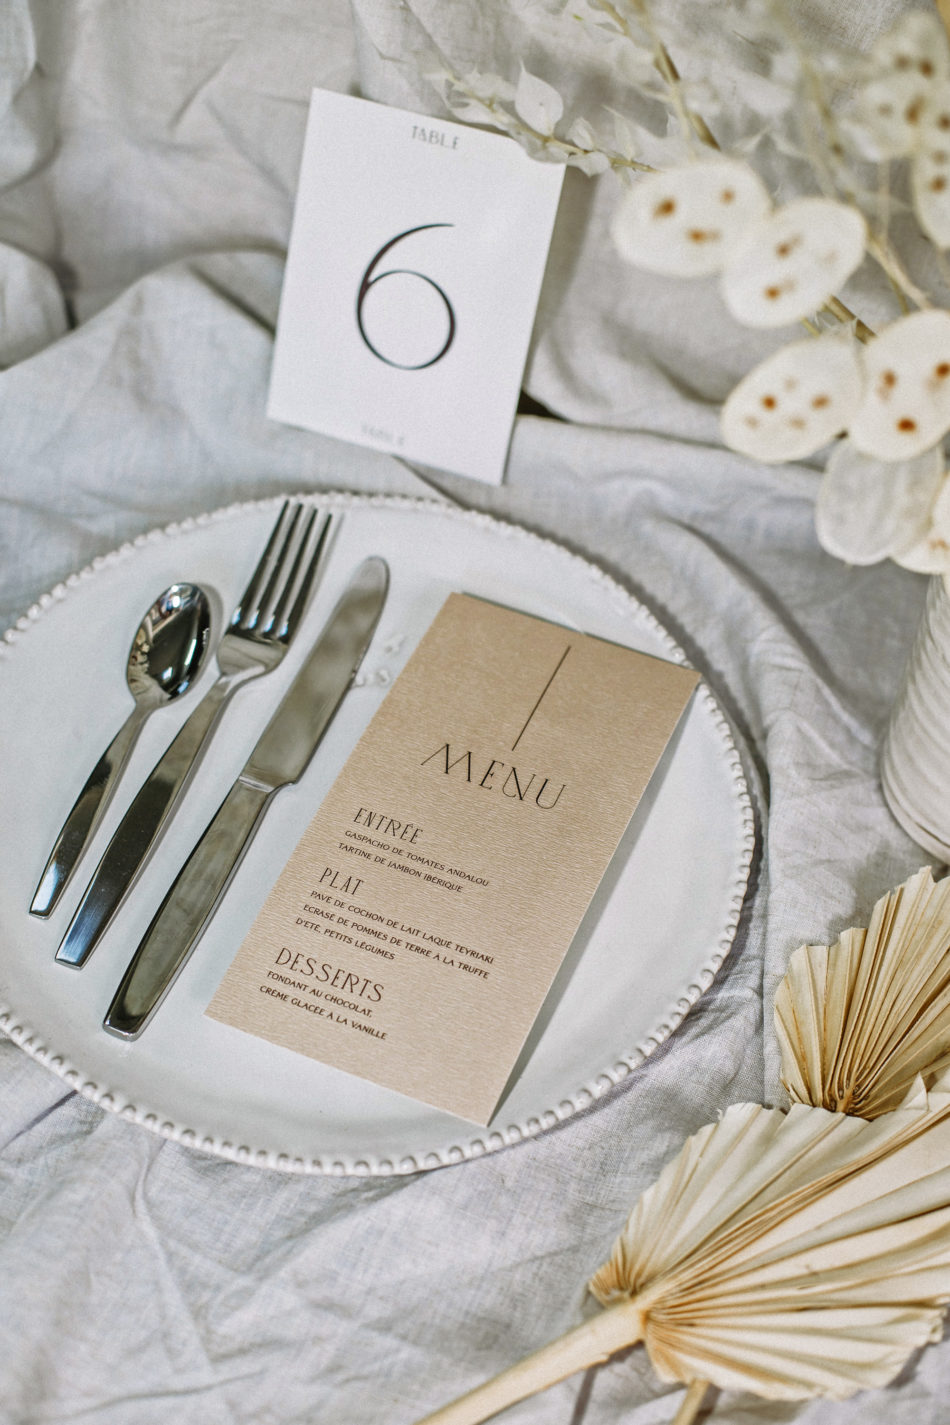 TABLE MARIAGE MODERNE